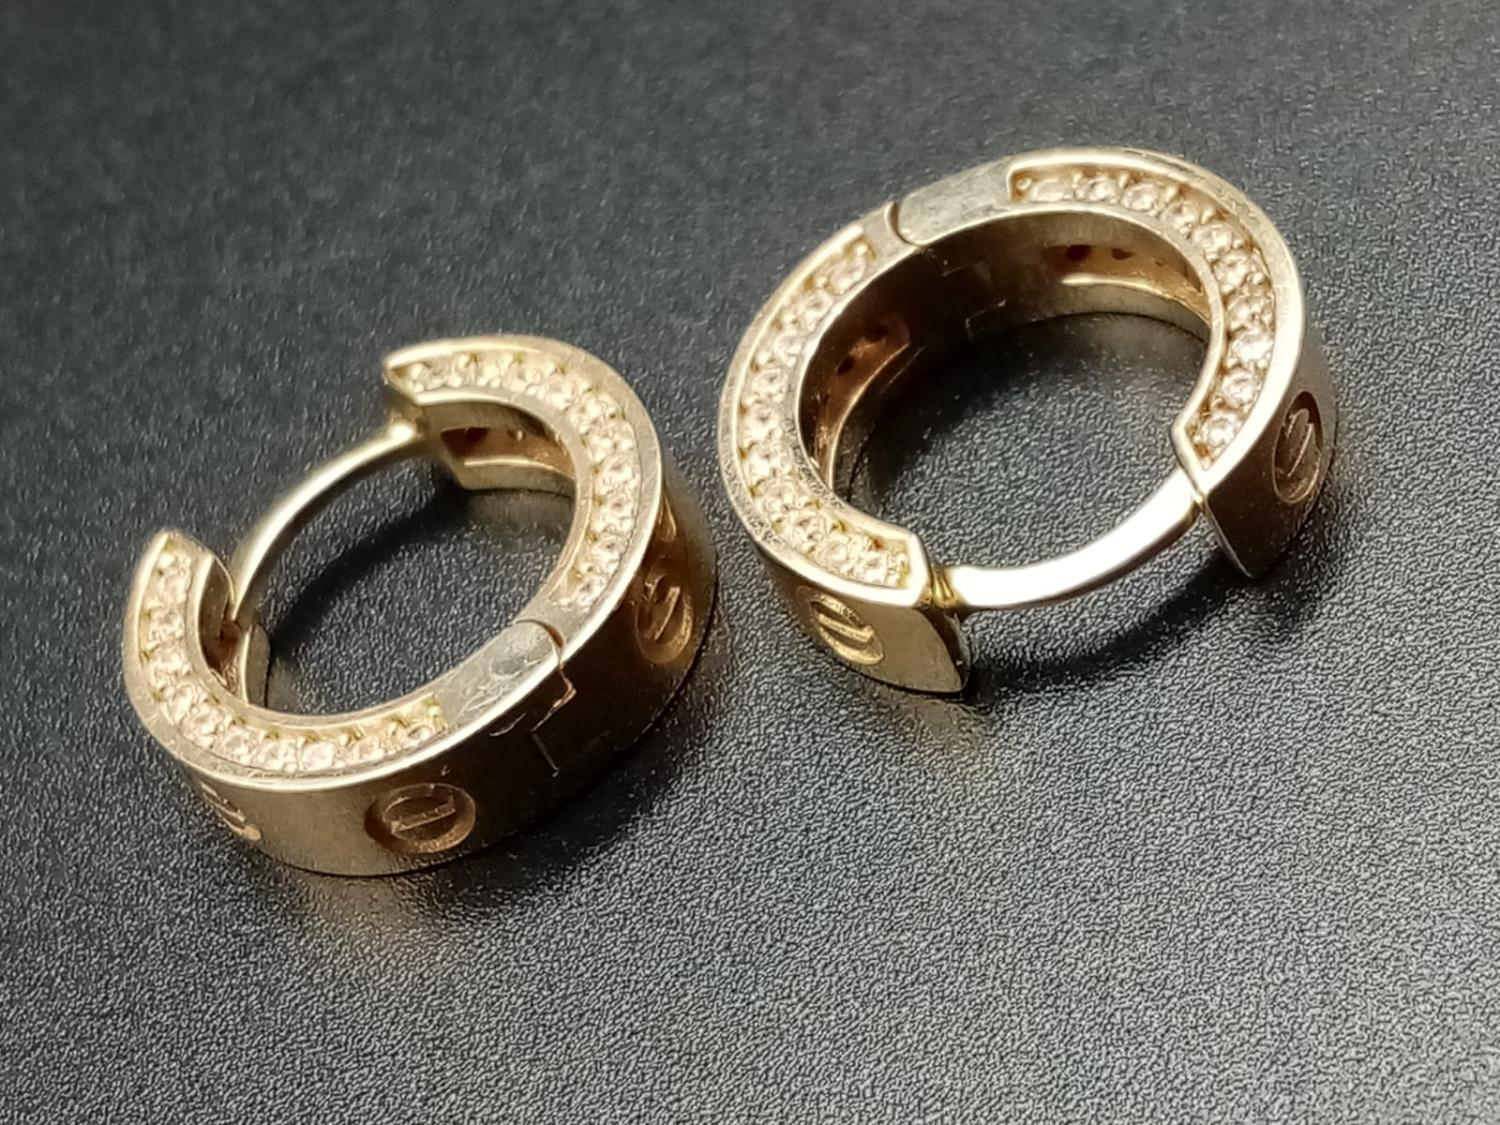 9CT YELLOW GOLD CZ SET CARTIER STYLE MINI HOOP EARRINGS, WEIGHT 4.8G - Image 3 of 5